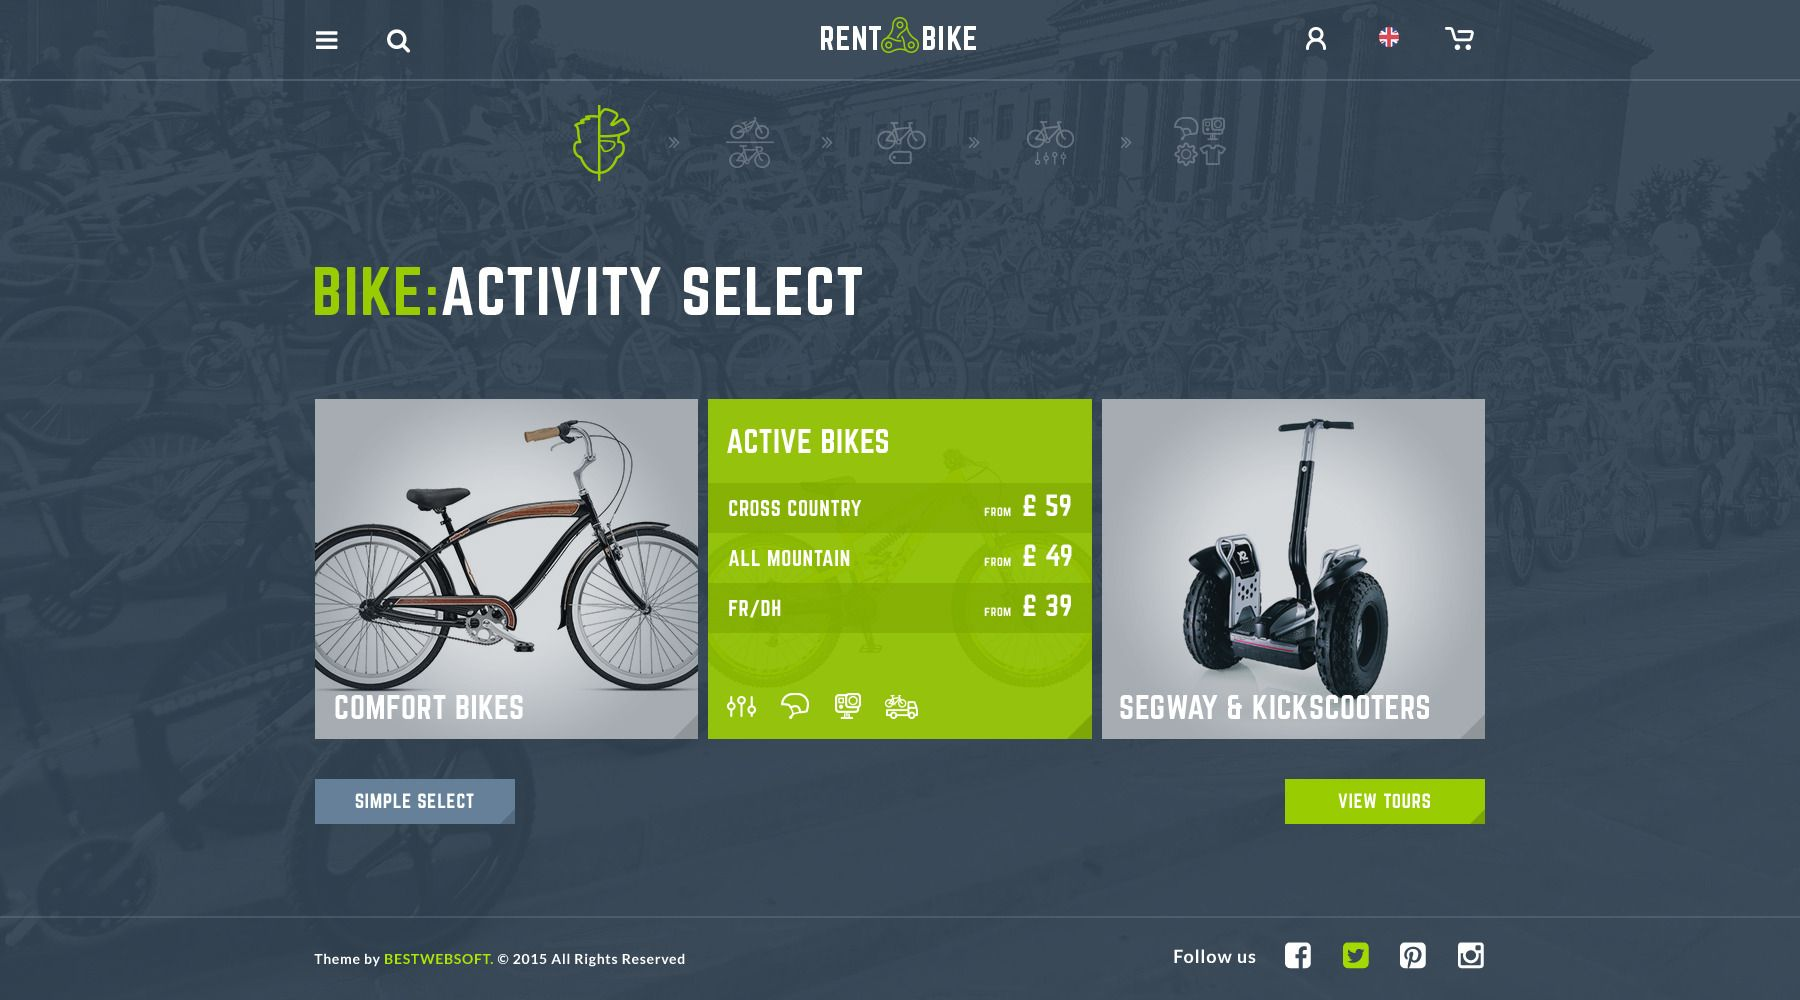 Rent A Bike Rental Booking Psd Template Psd Templates Bike